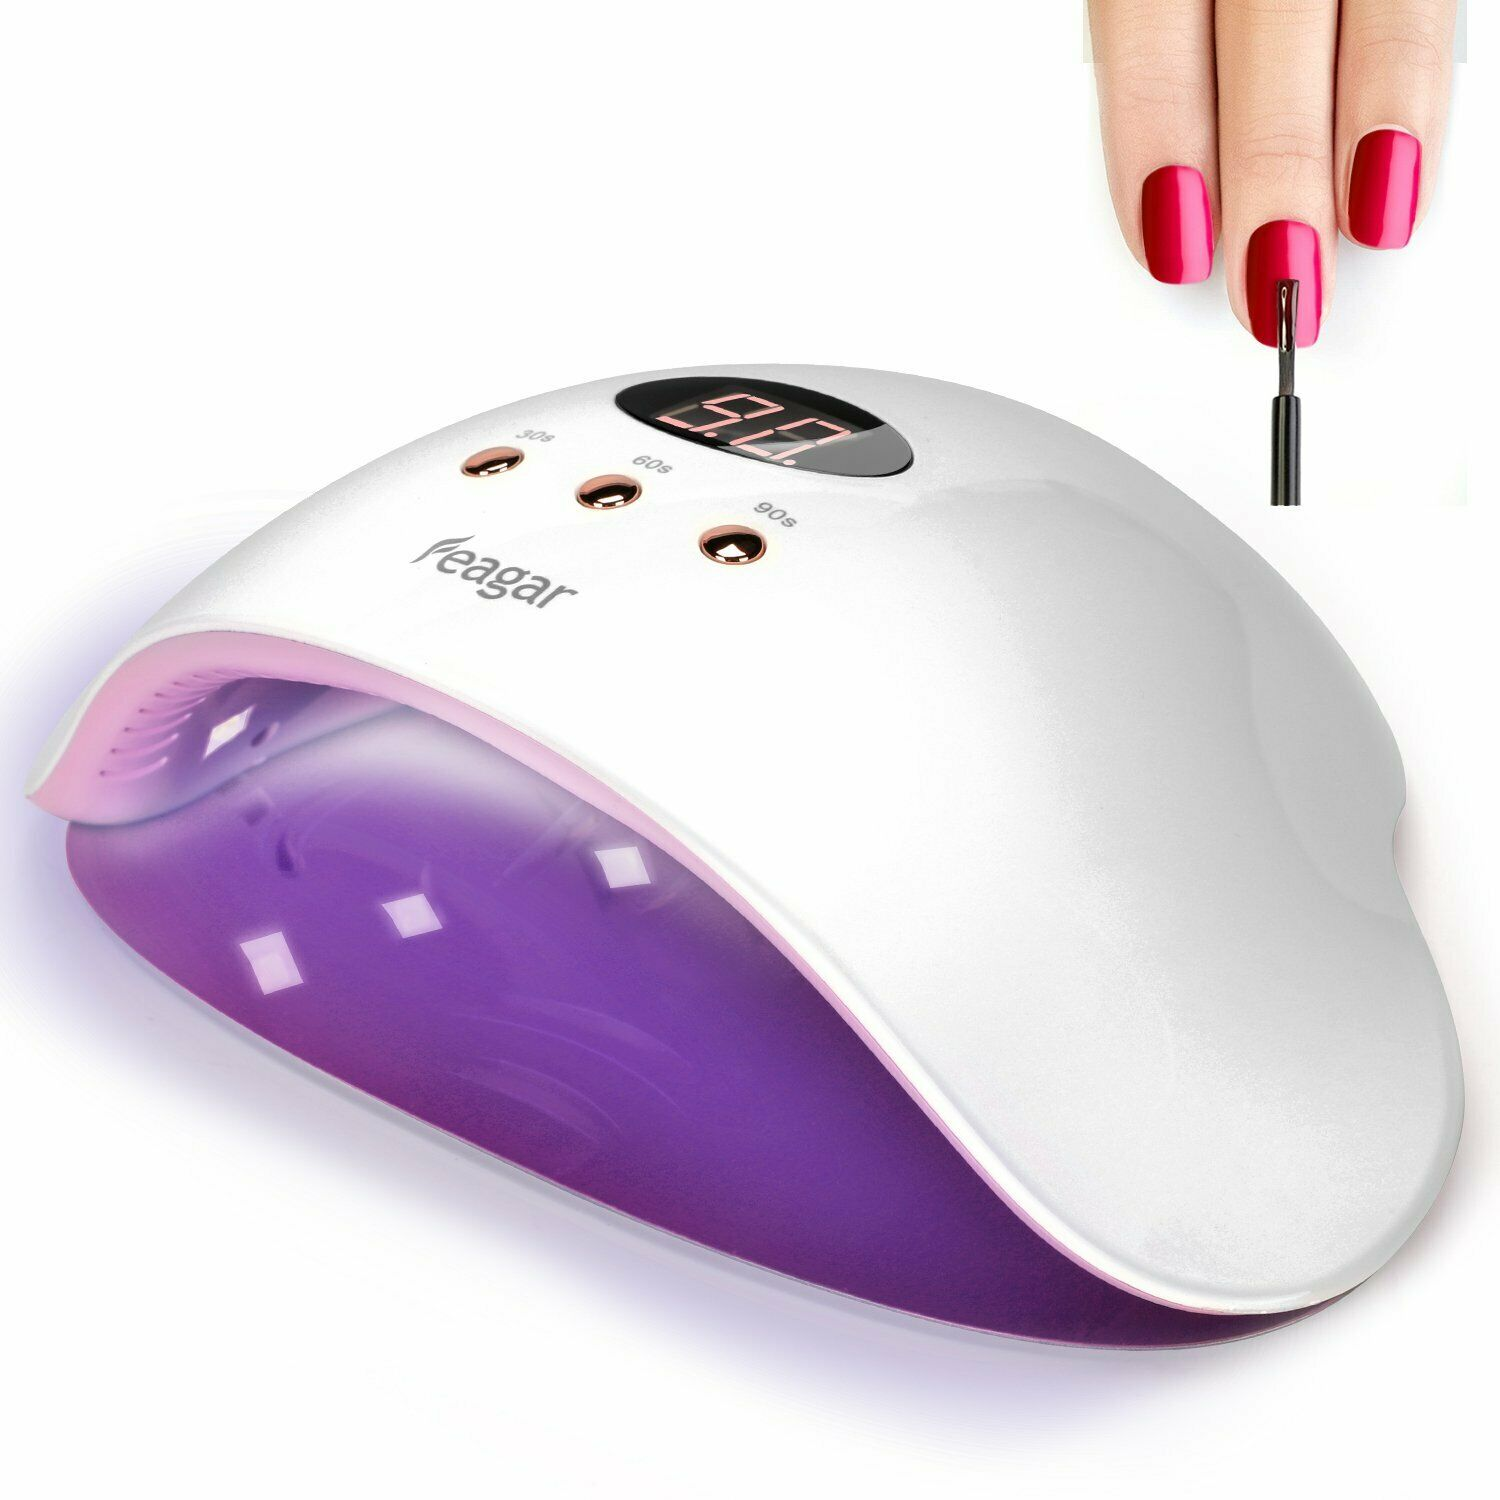 Professional uv/ led Nail Dryer Gel Nail Polish Light with A